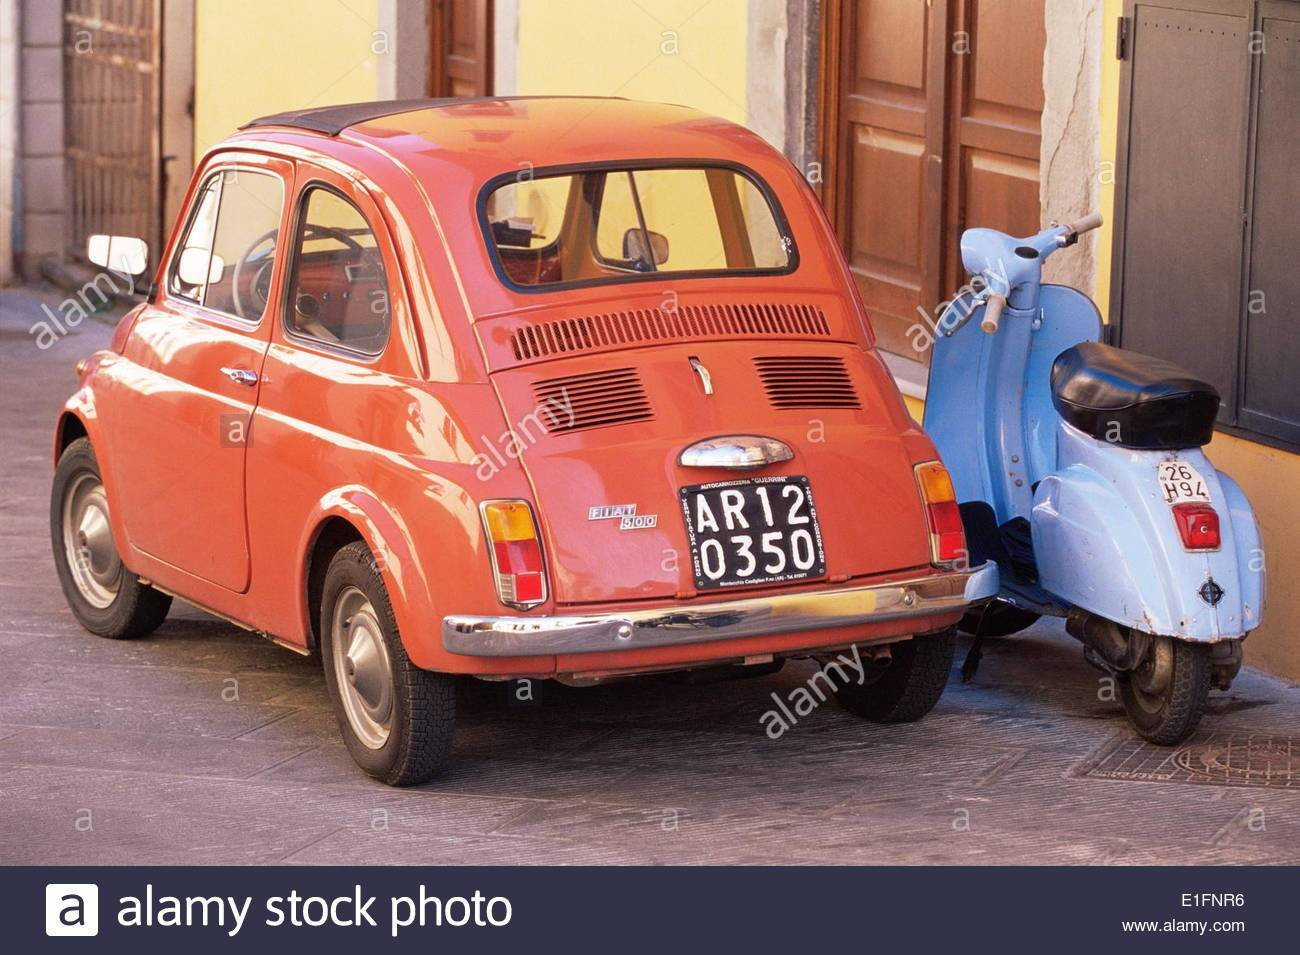 Latest Fiat 500 Car And Old Blue Scooter Parked Together In Back Free Download